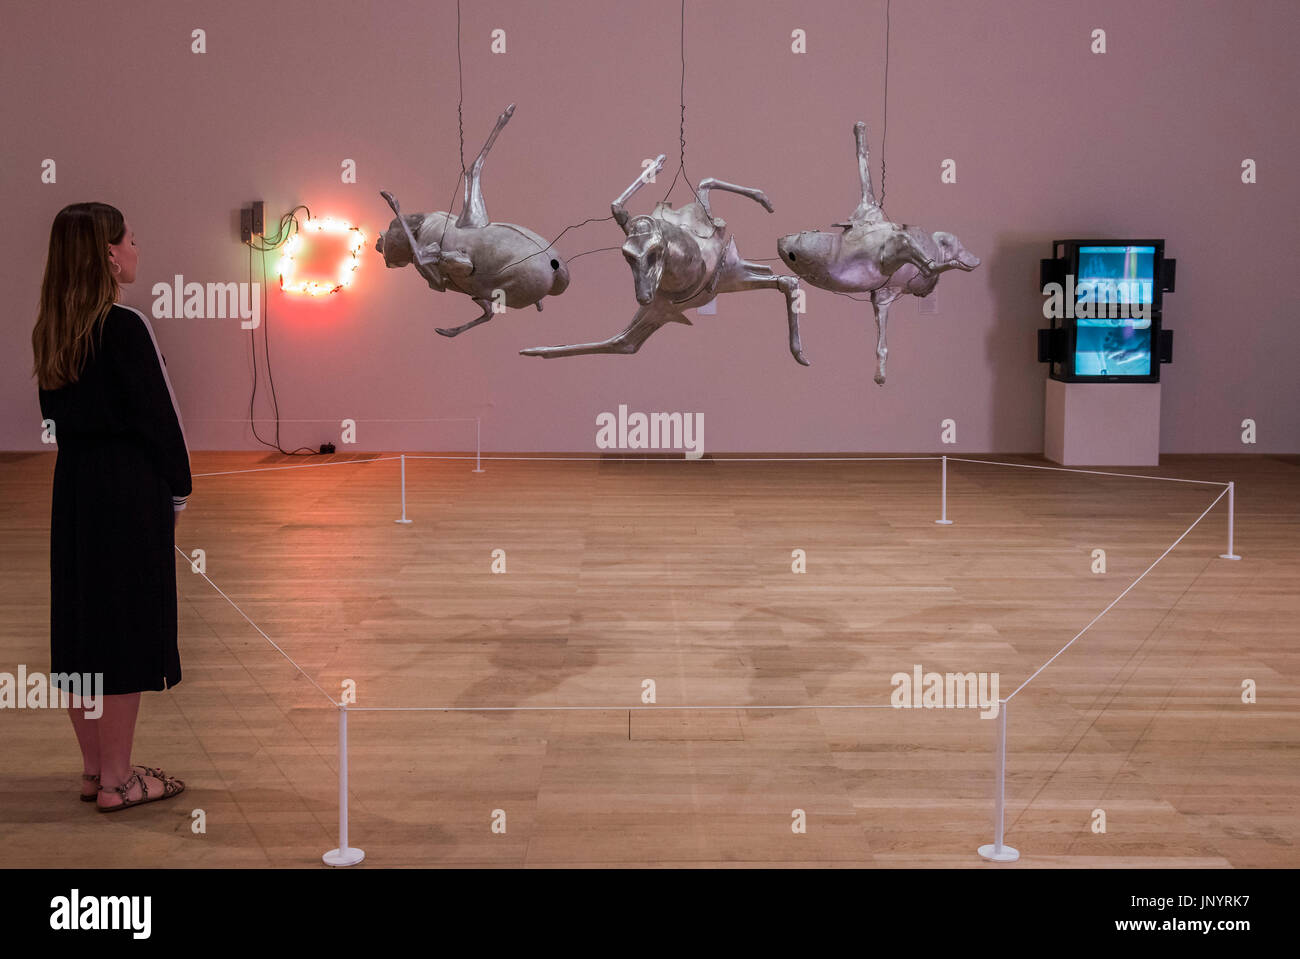 Untitled (Three large animals) 1989 - works by Bruce Nauman in the ARTIST ROOMS, a new exhibition, is at Tate Modern - Stock Image